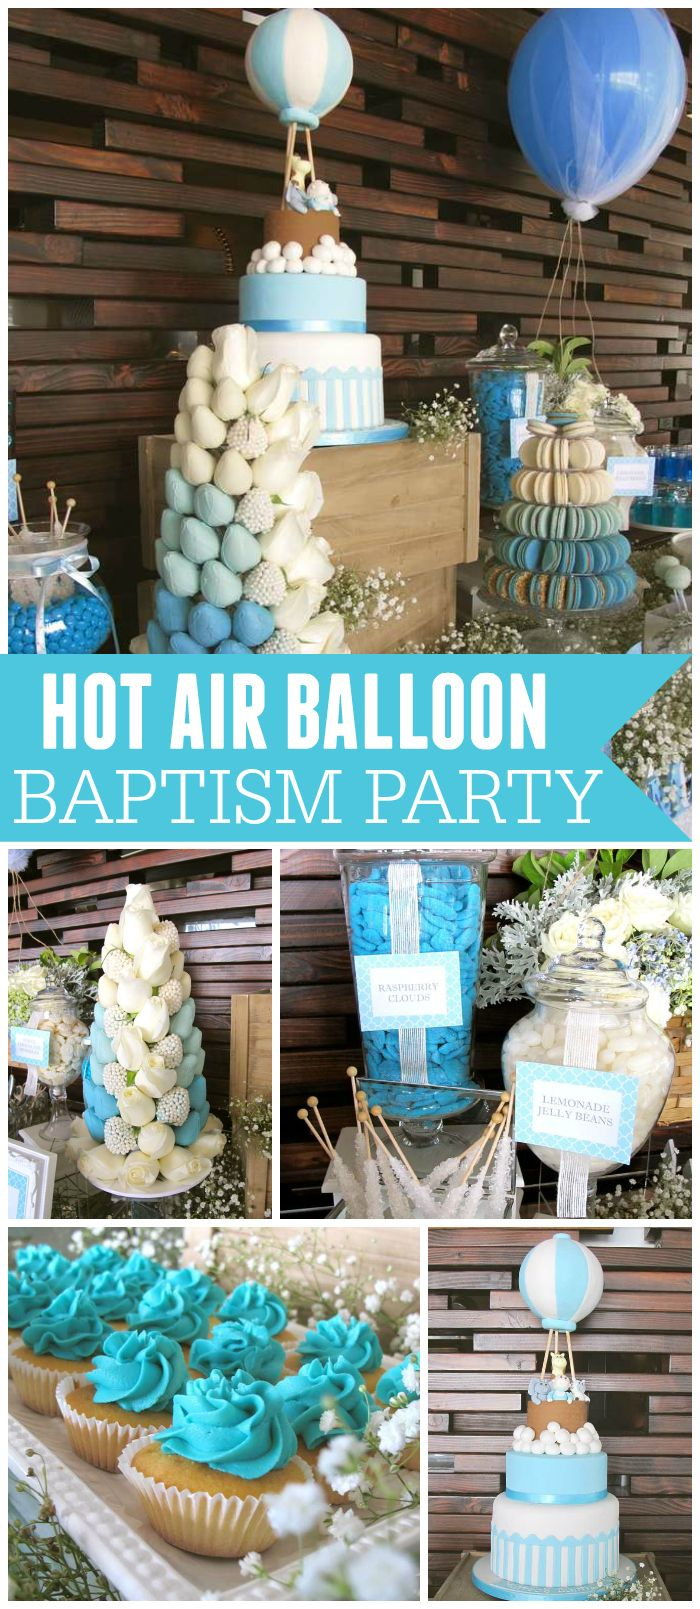 Party Baptism ideas pictures forecasting to wear for everyday in 2019